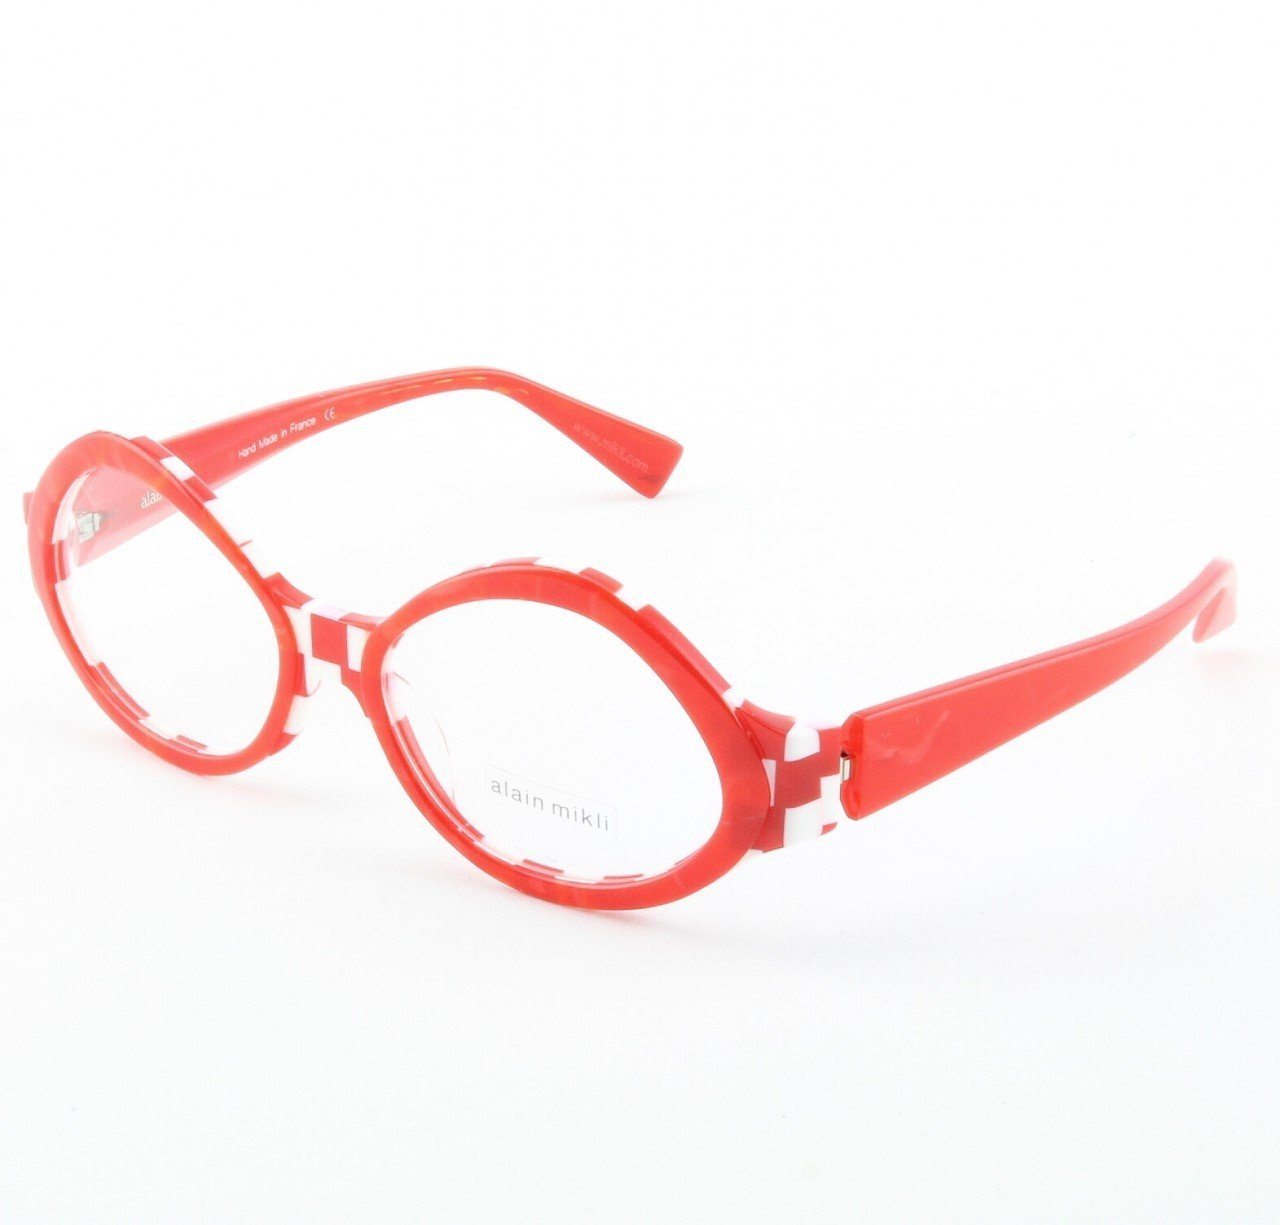 Alain Mikli Eyeglasses AL1014 Col. 2 Red and White Checked